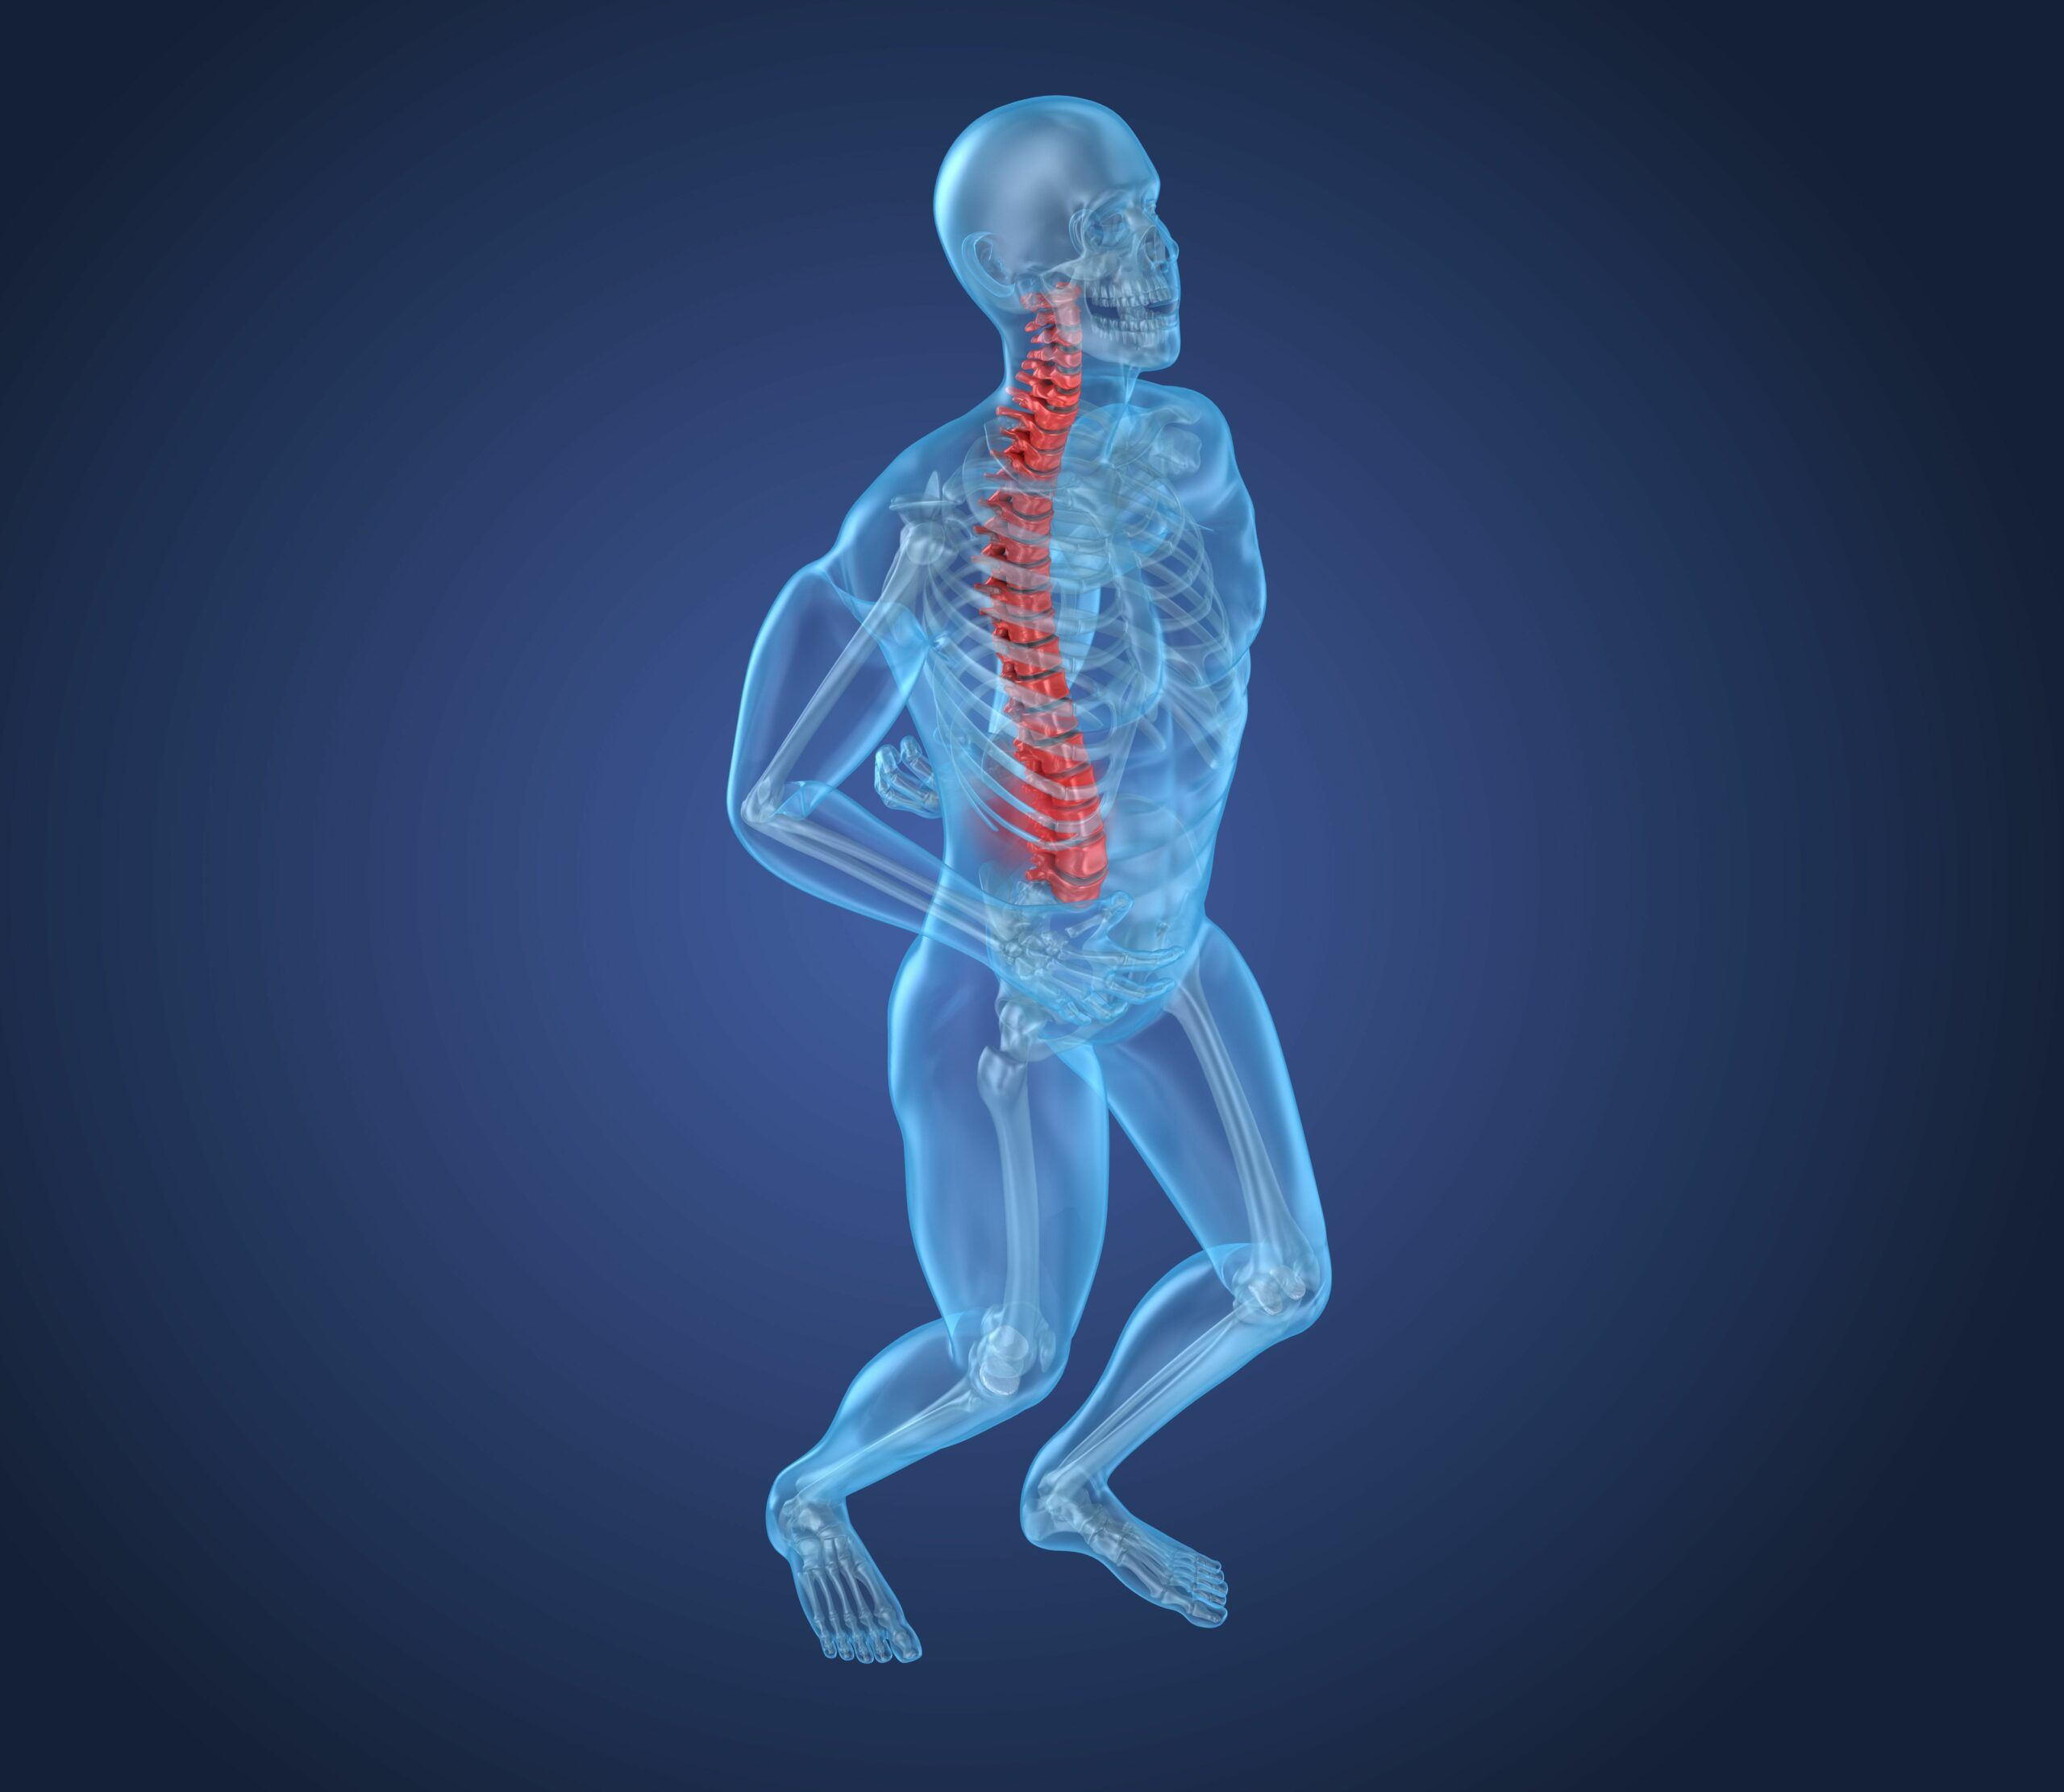 human anatomy x-ray for spinal cord injury